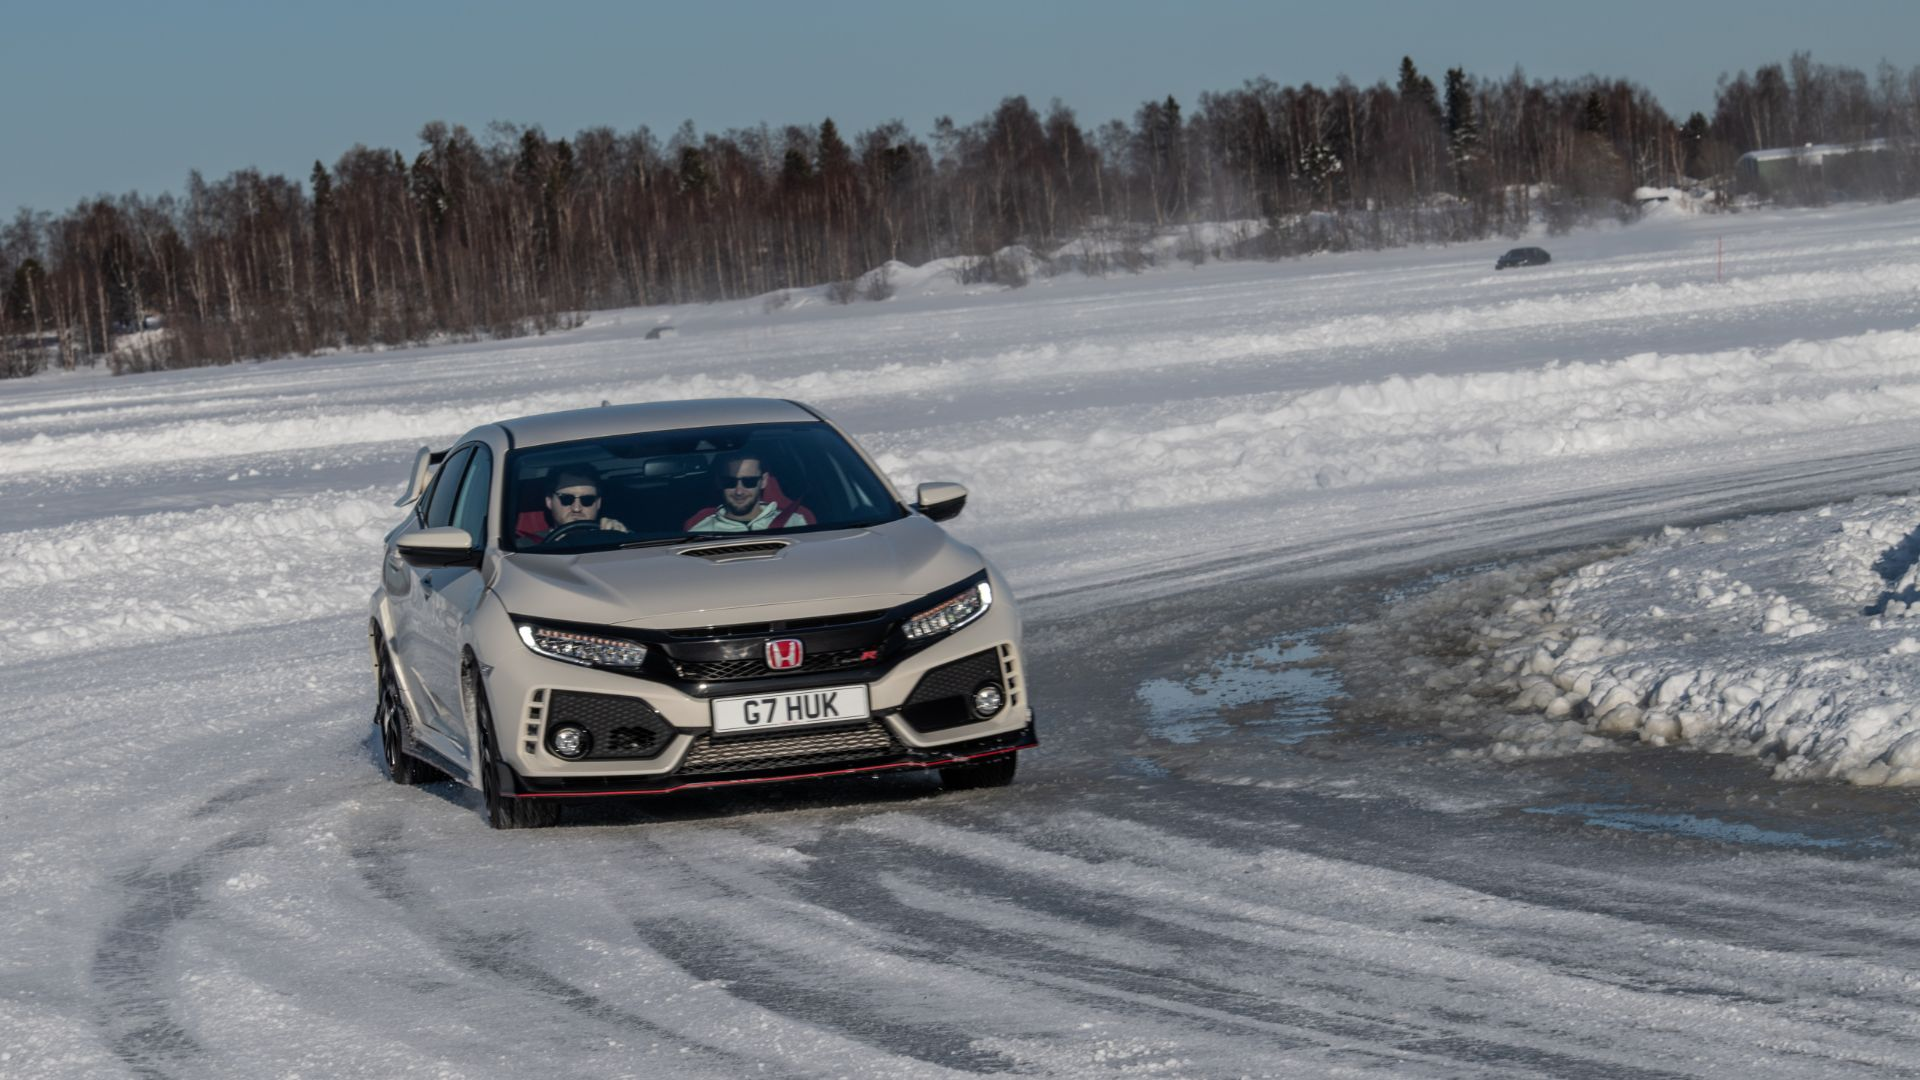 Honda Civic ice driving